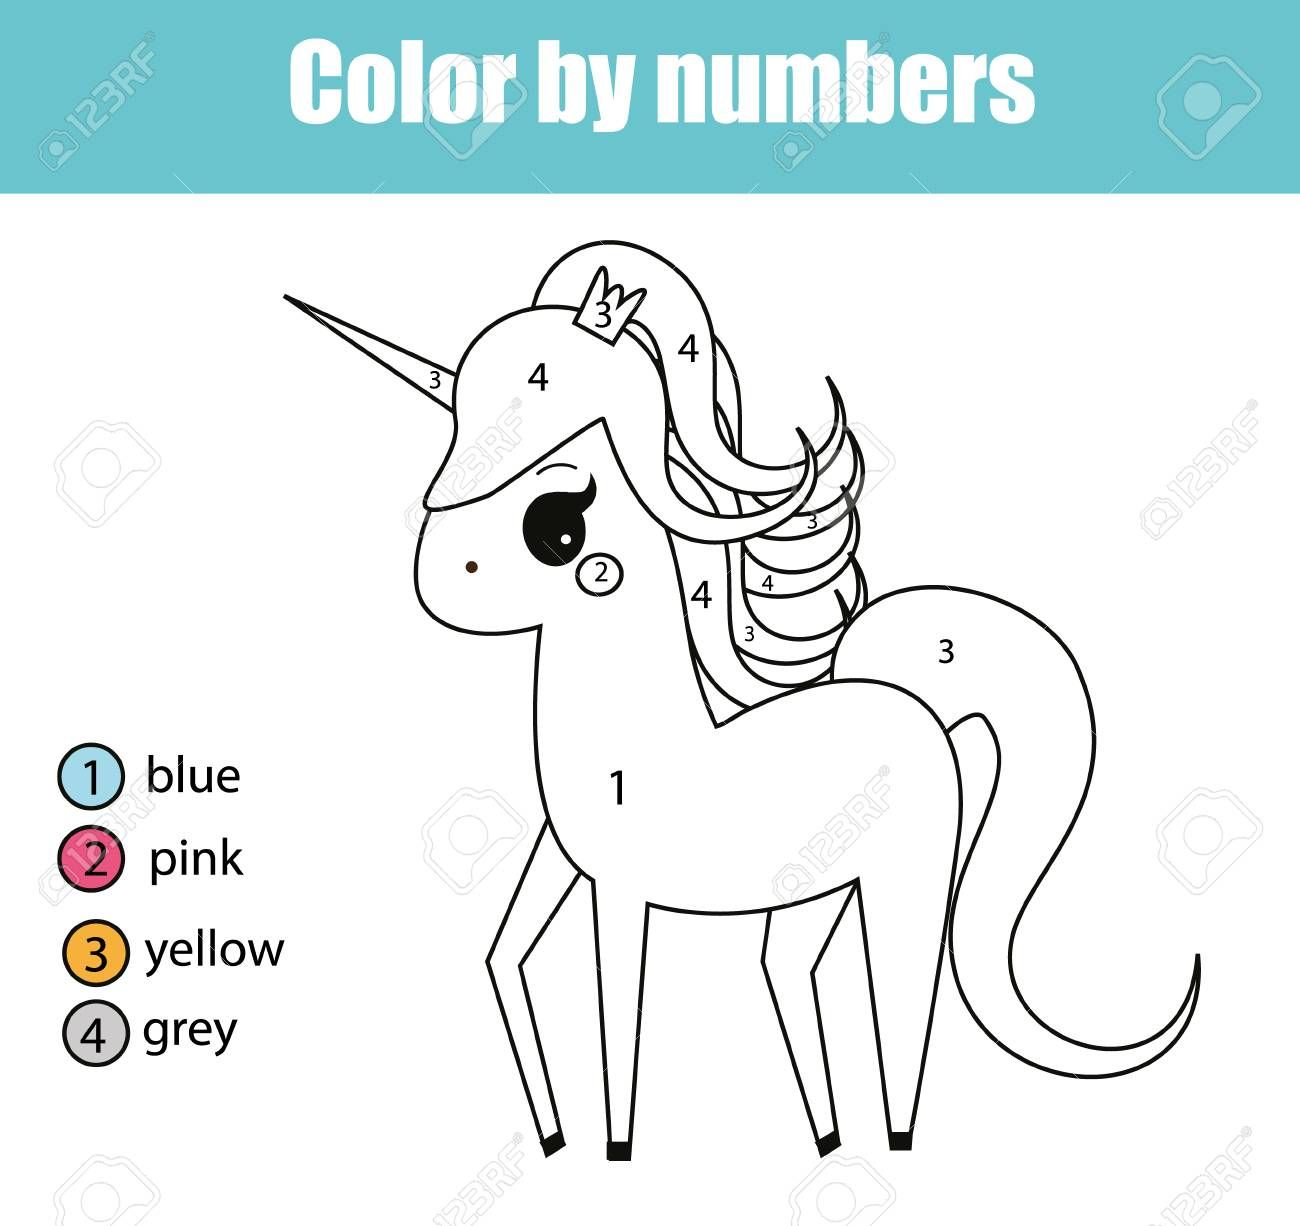 Coloring Page With Cute Unicorn Character Color By Numbers Coloring Pages Cute Unicorn Unicorn Coloring Pages